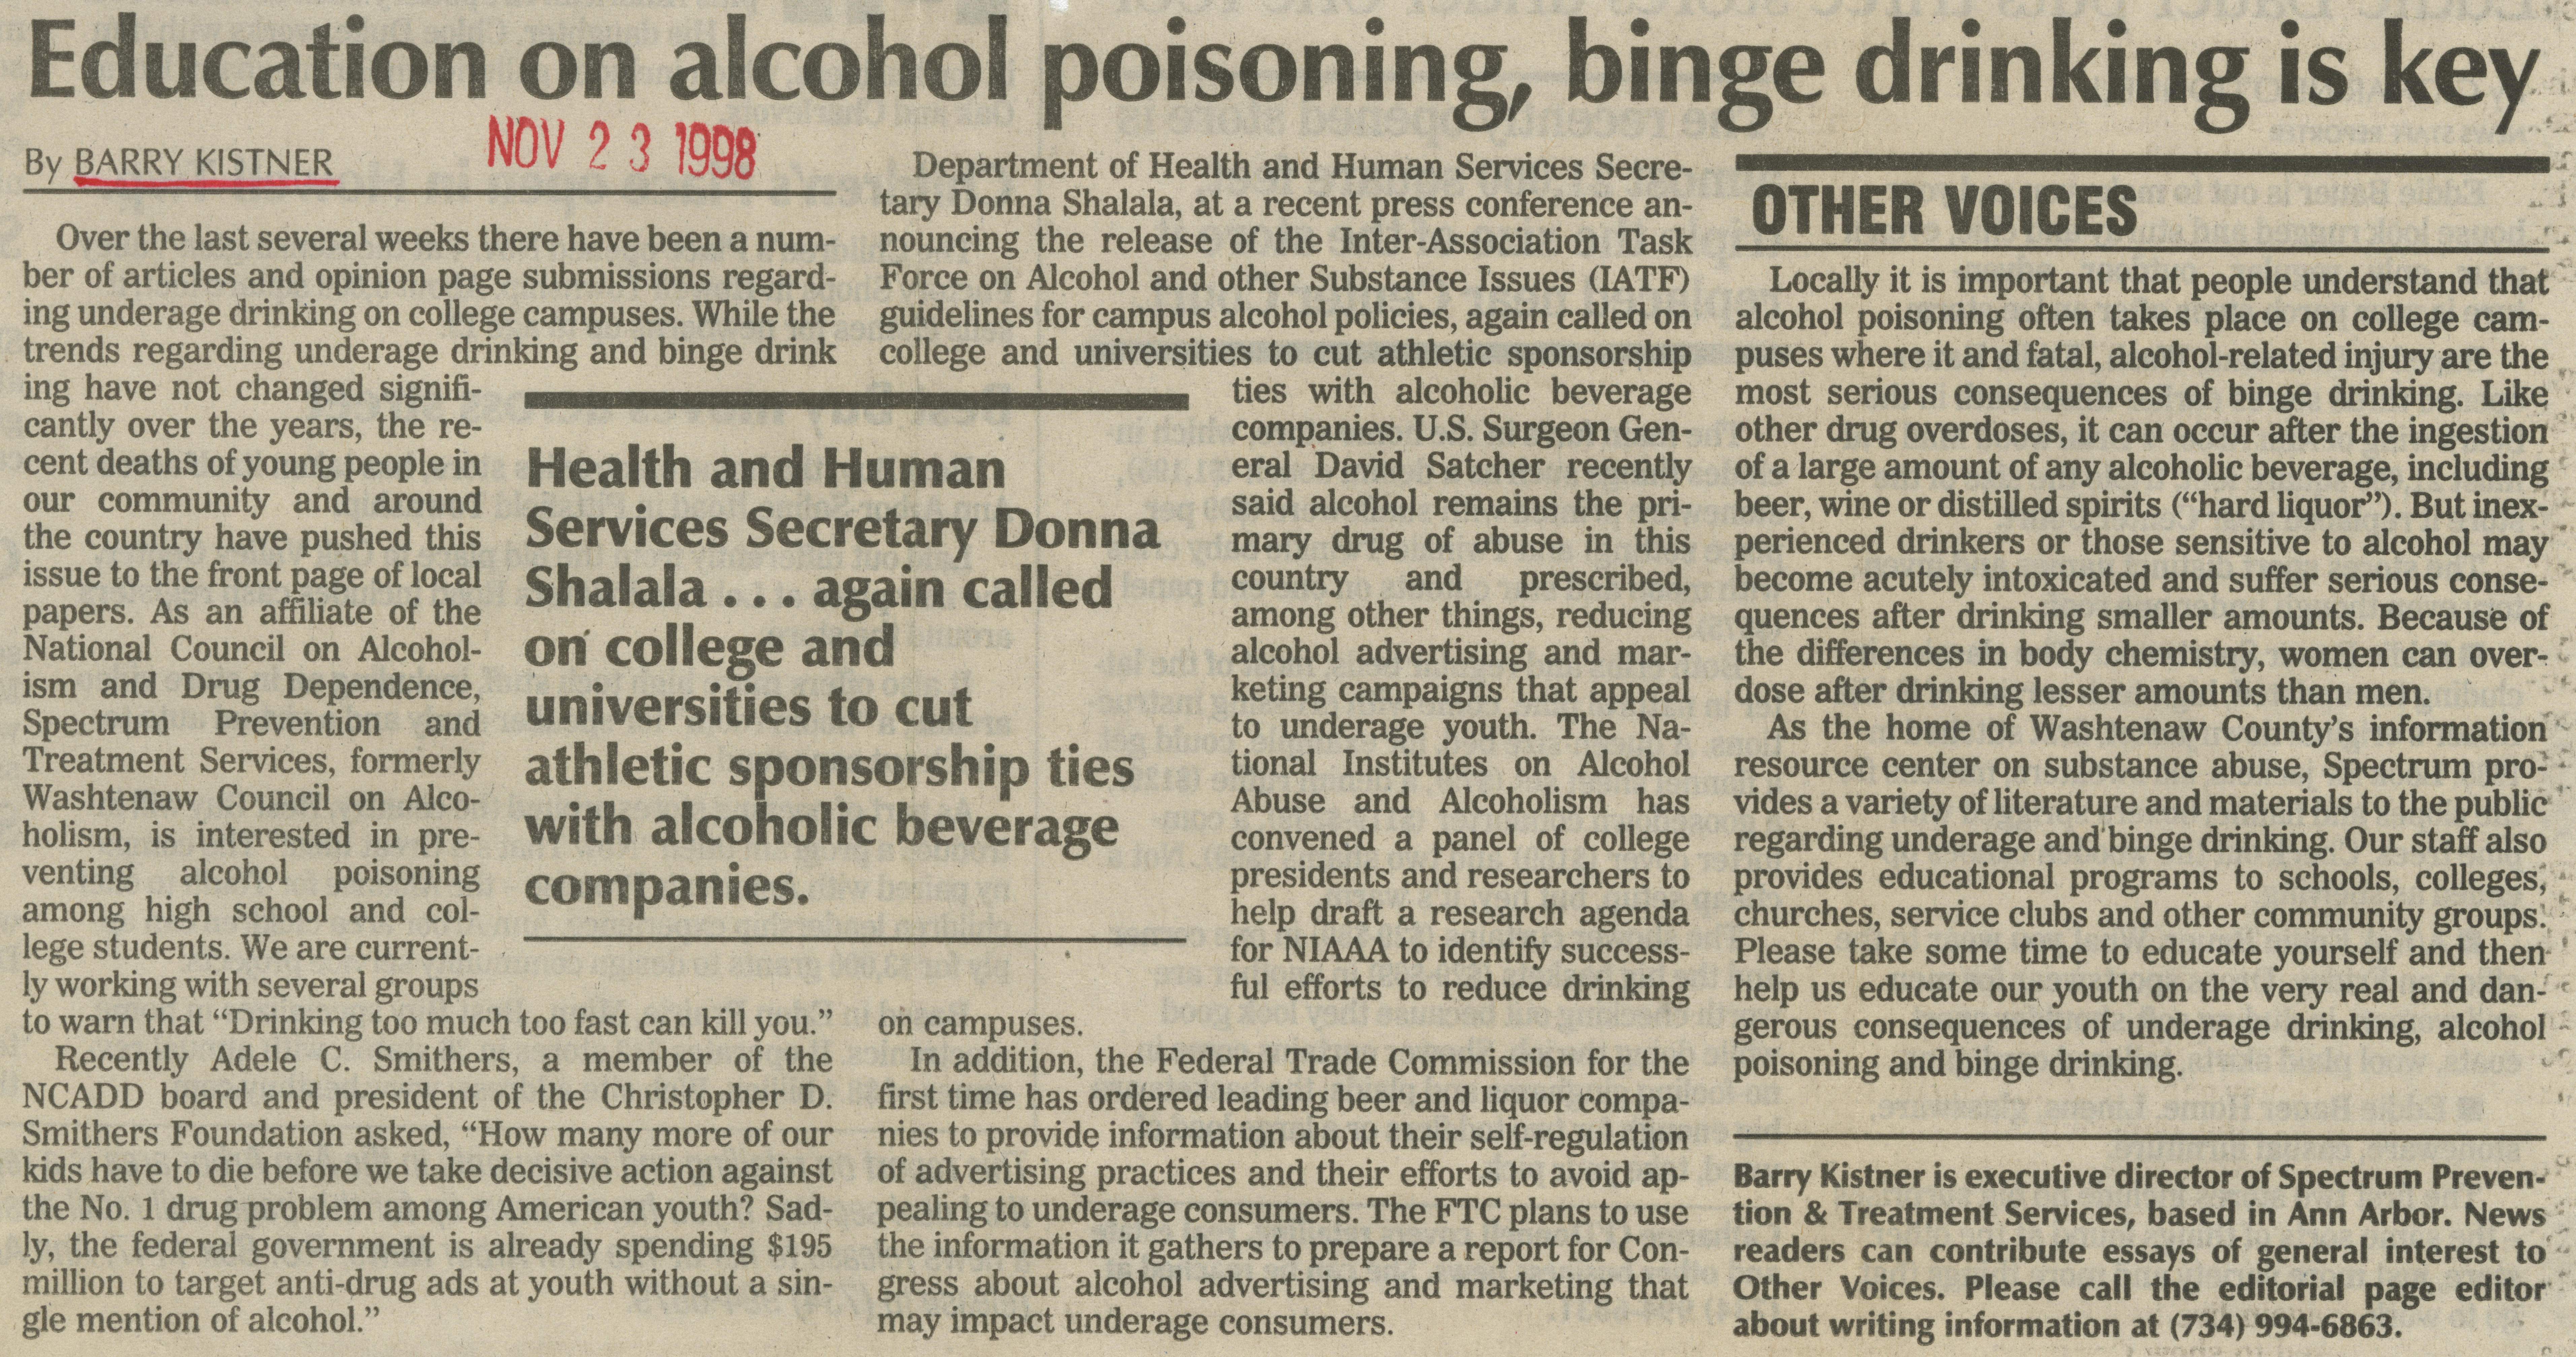 Education on alcohol poisoning, binge drinking is key image